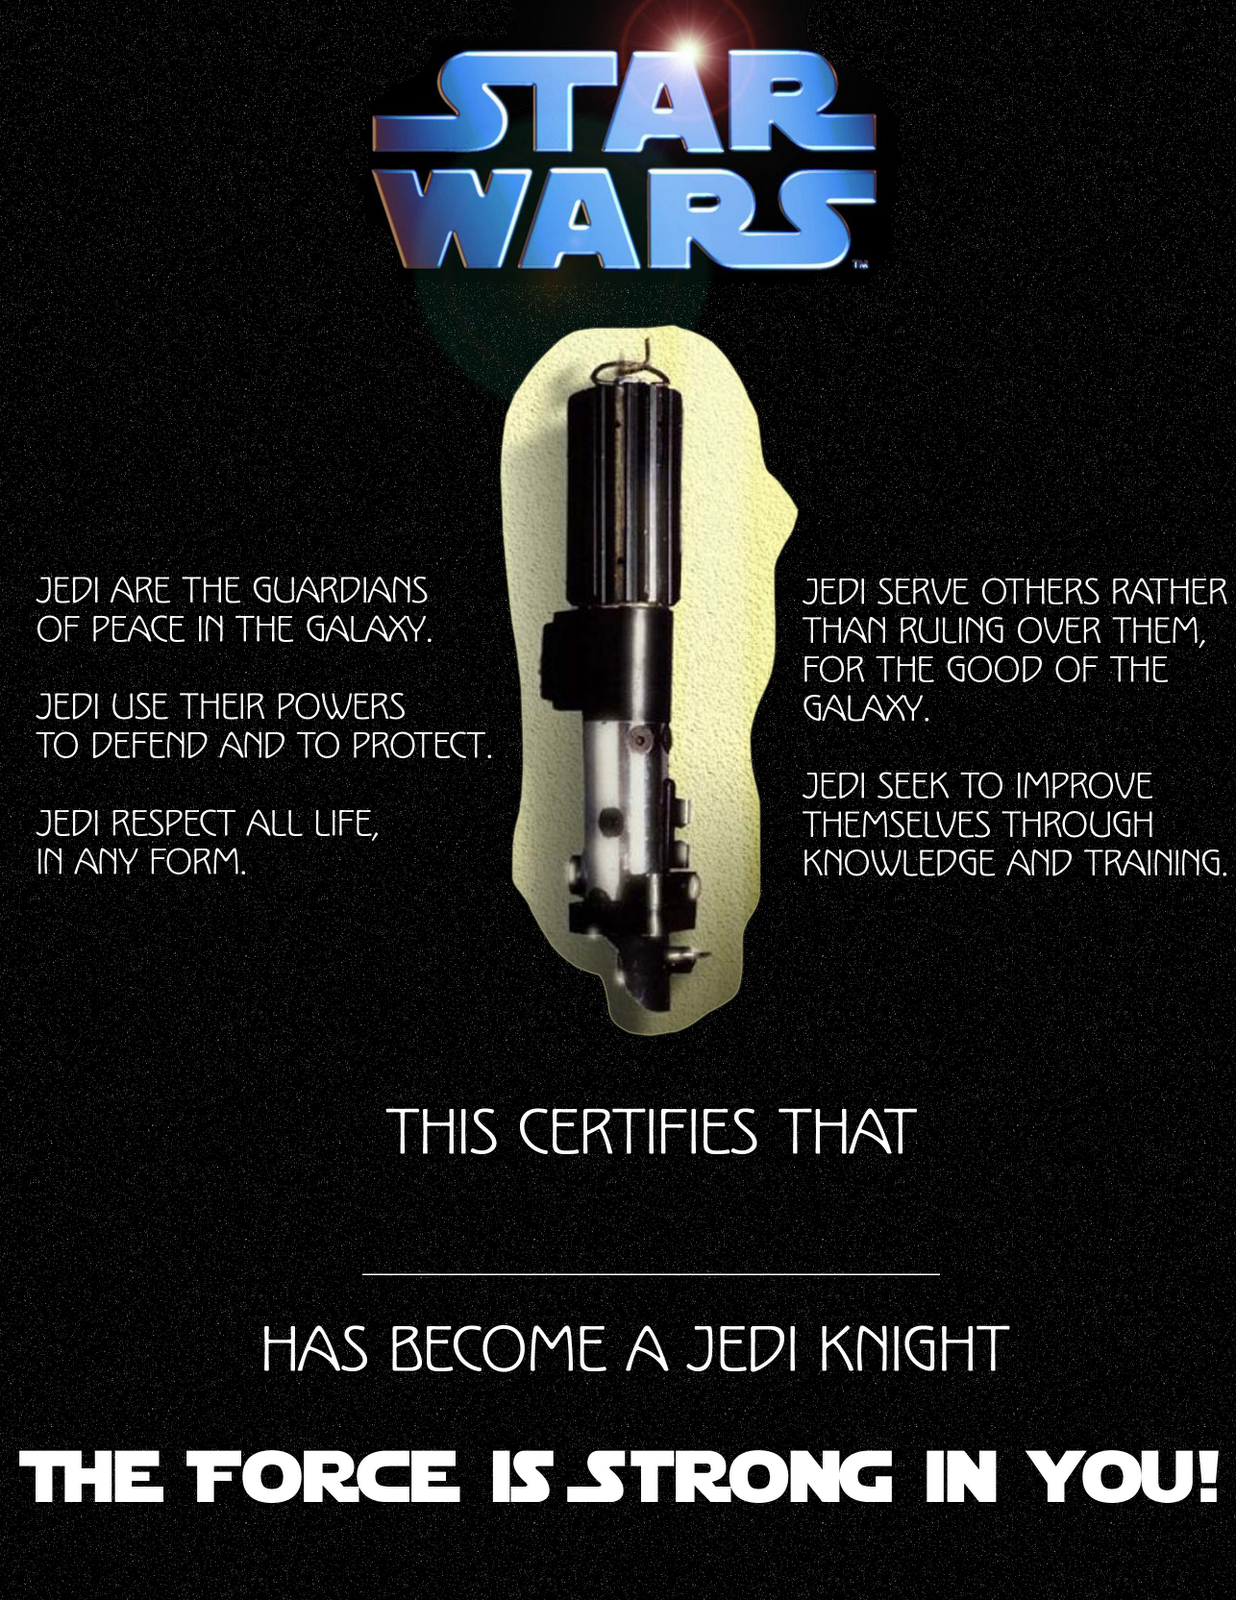 Jedi training certificate template picture to pin on for Star wars jedi certificate template free